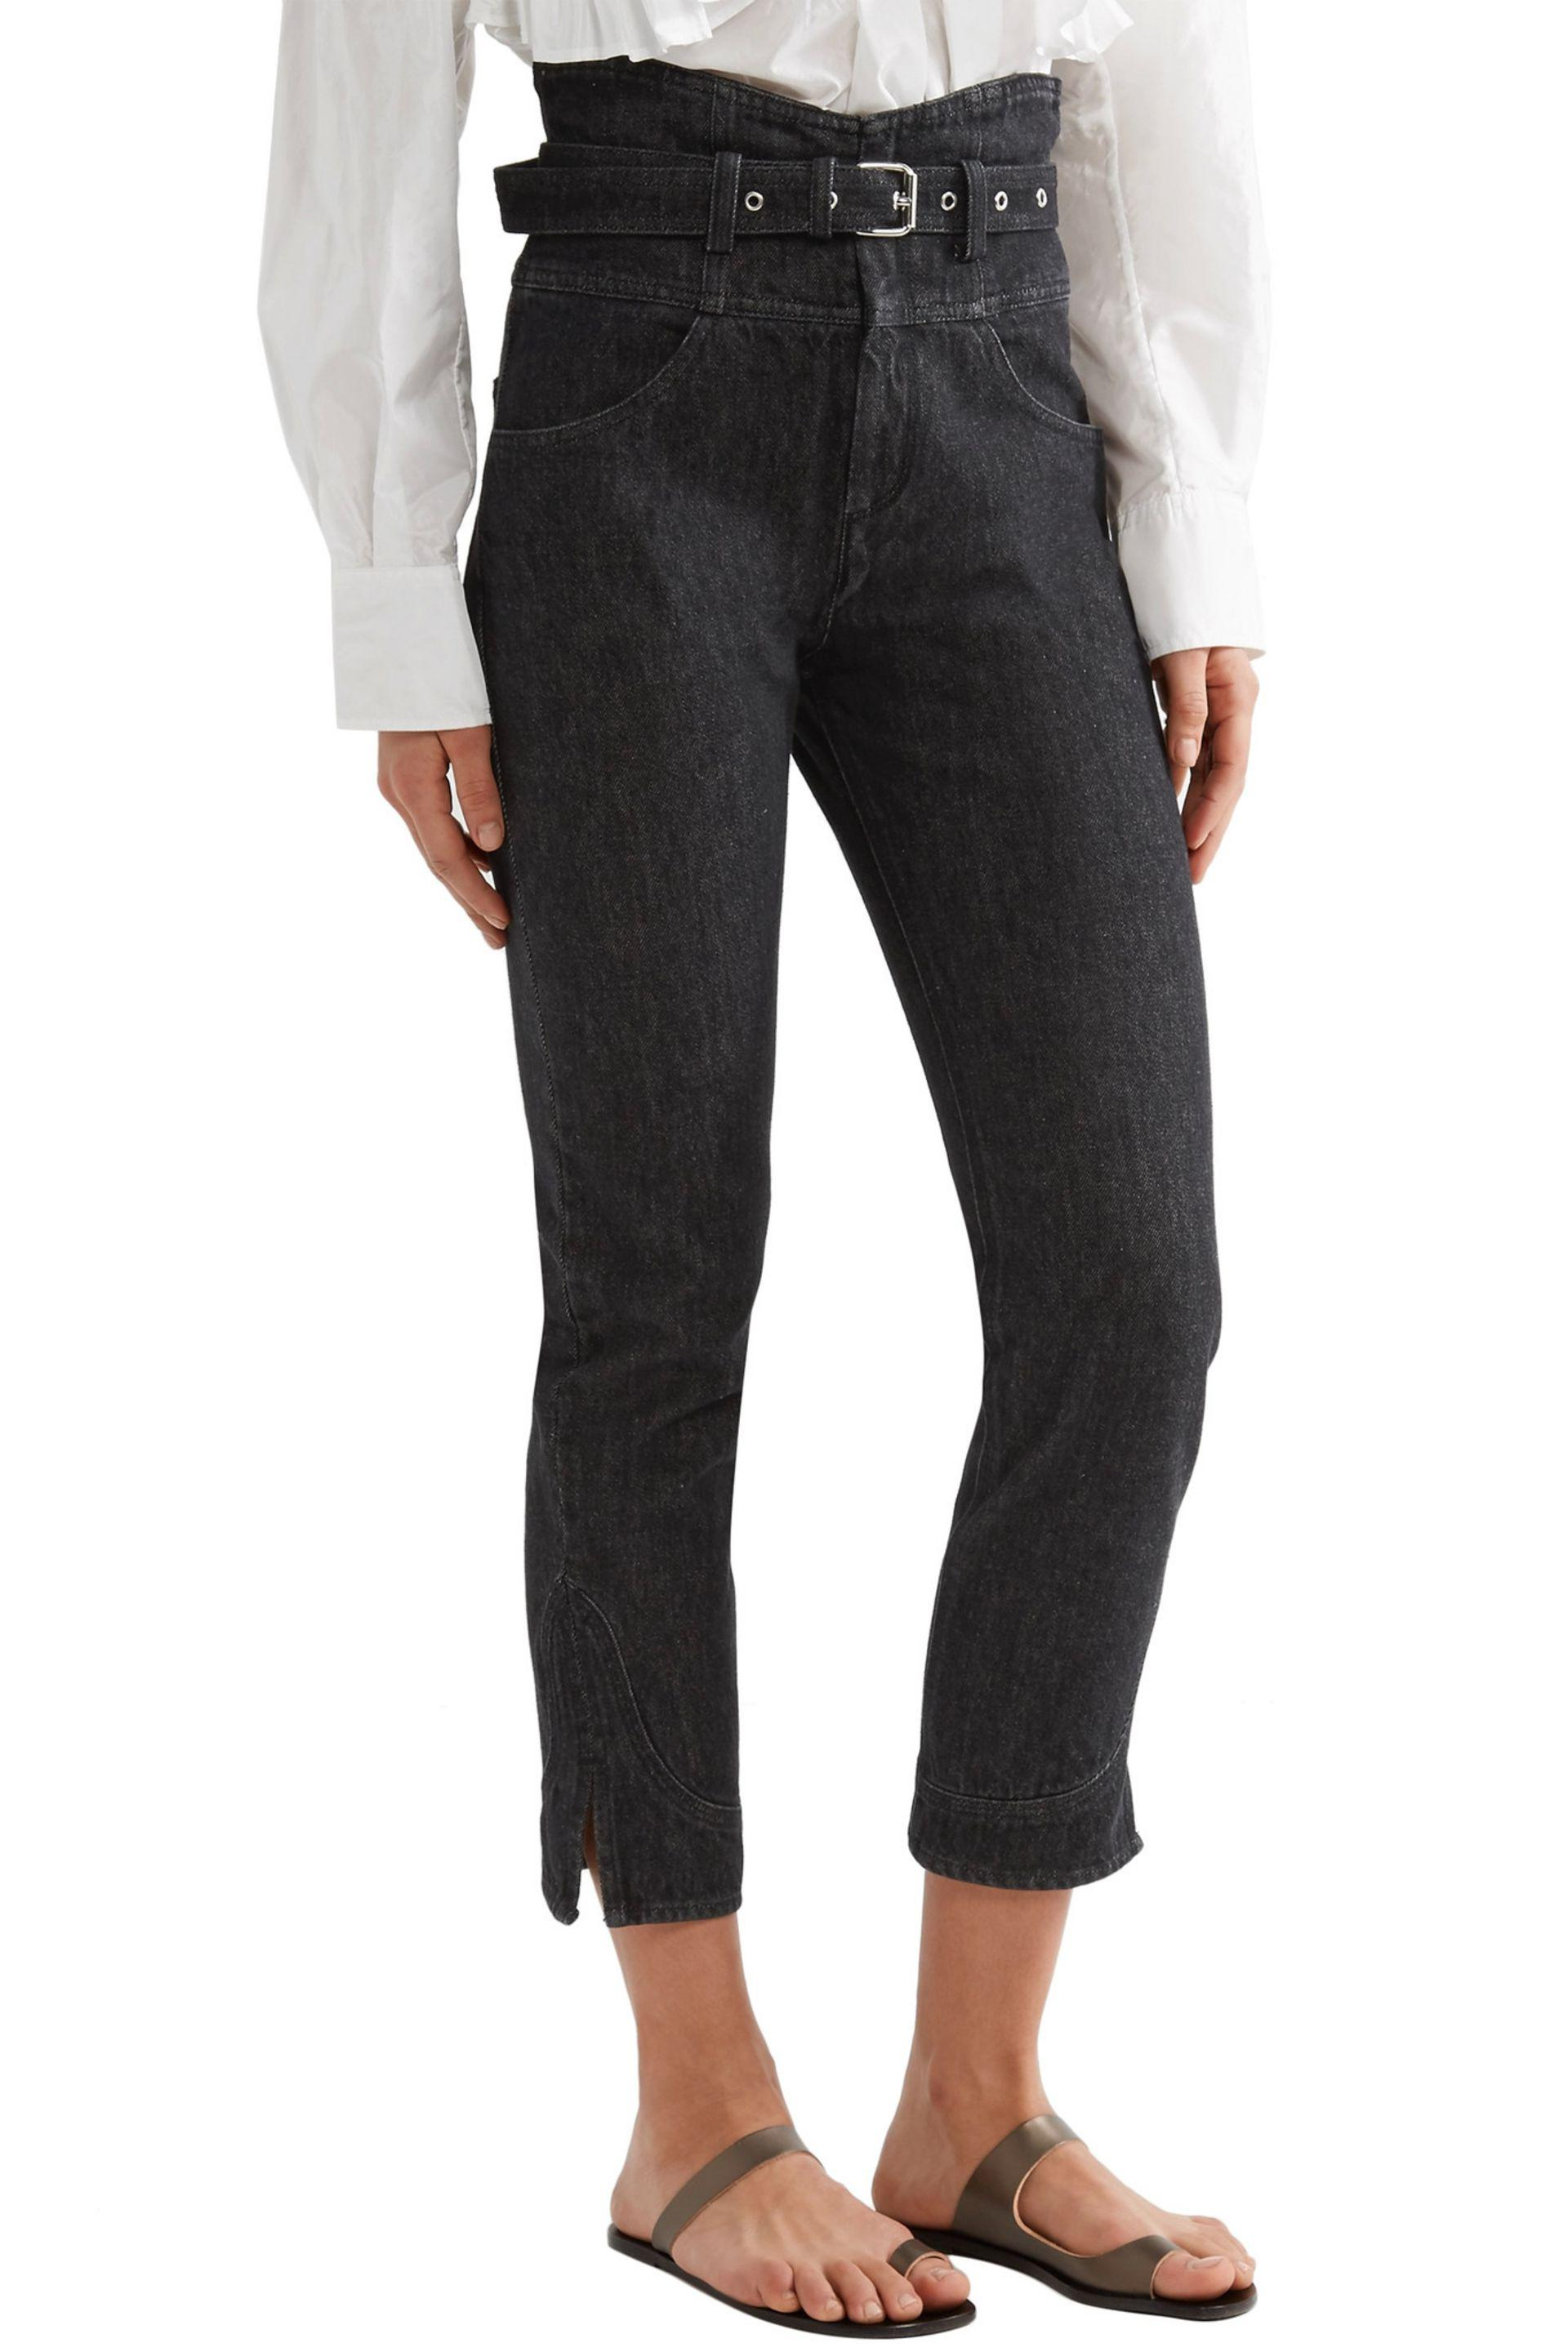 Free Shipping Low Price Sale Order Isabel Marant Woman Evera Belted High-rise Straight-leg Jeans Black Size 42 Isabel Marant Discount Footlocker Finishline Slgxwo